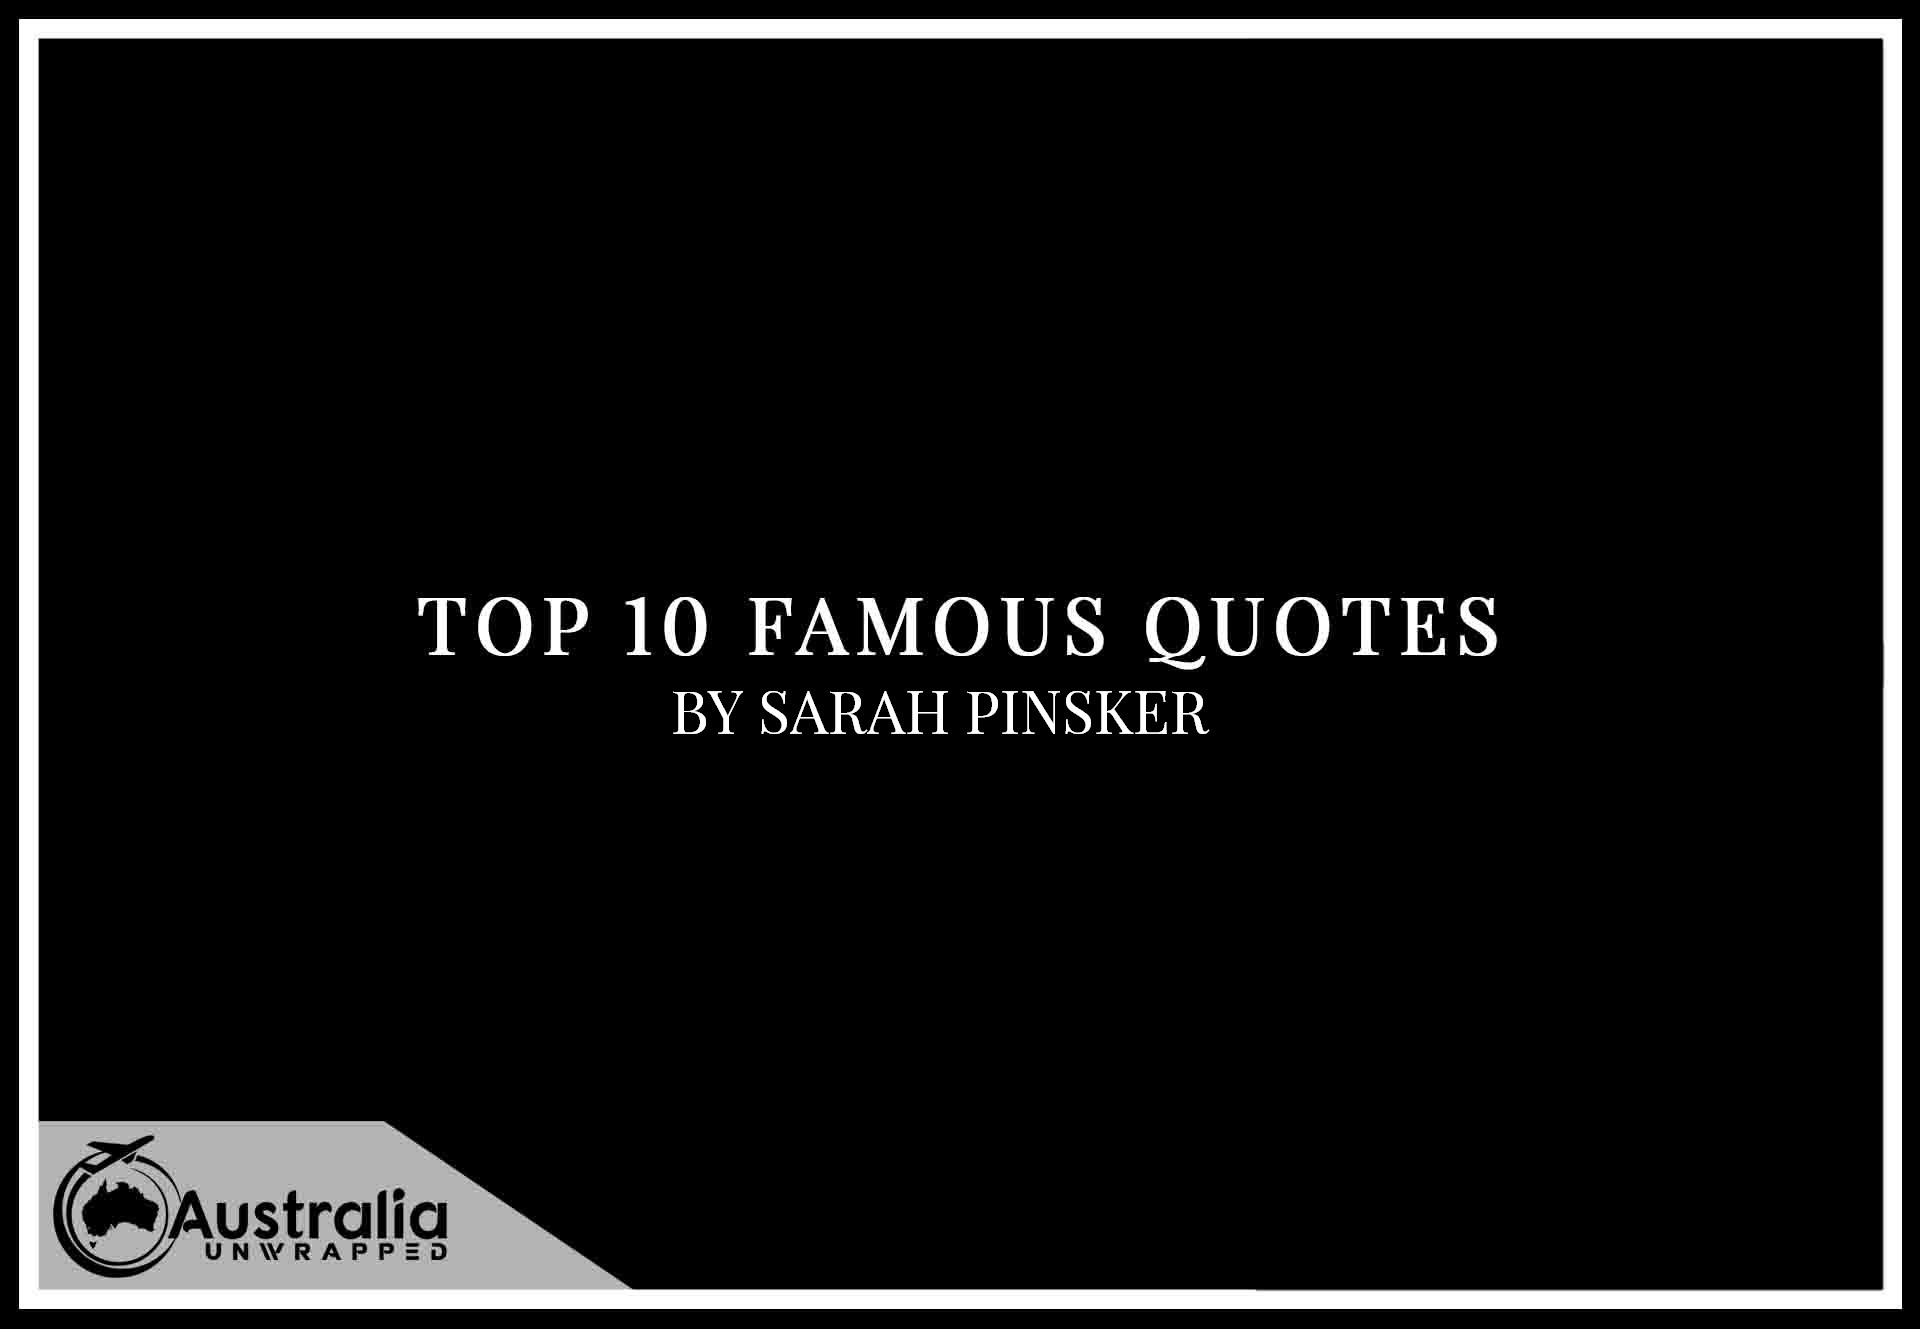 Top 10 Famous Quotes by Author Sarah Pinsker